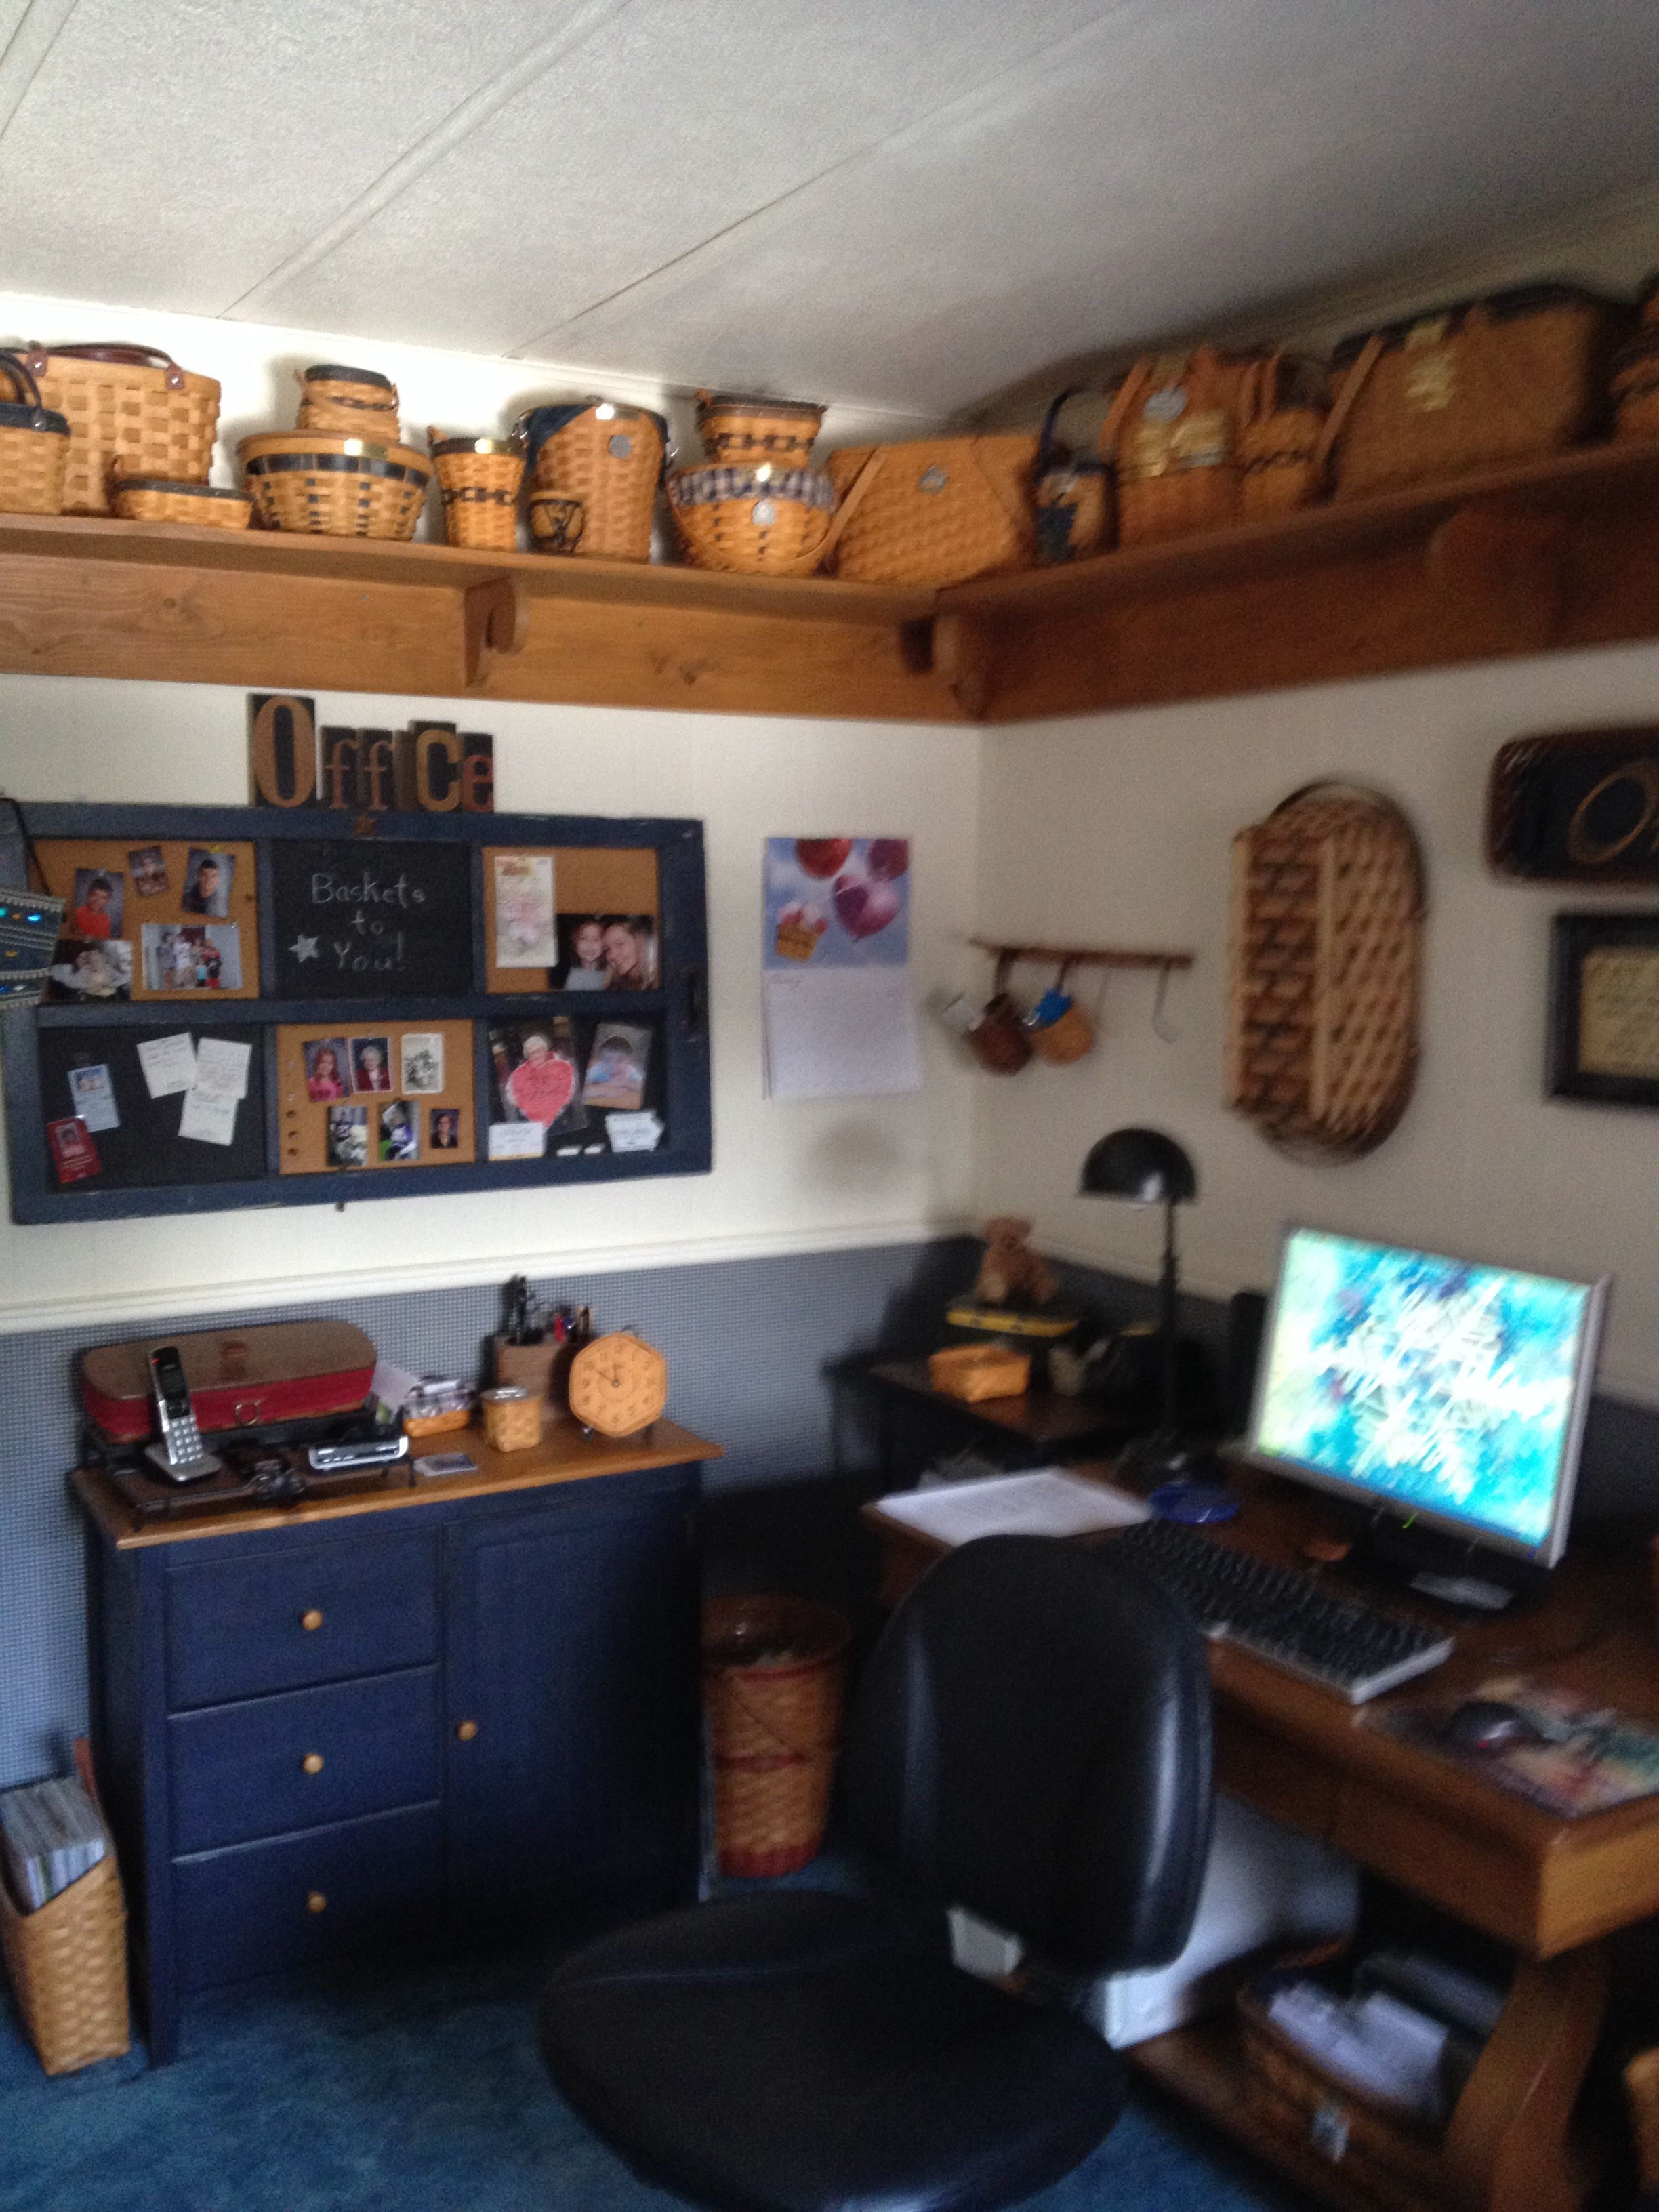 When I'm in my office, I'm surrounded by my Longaberger